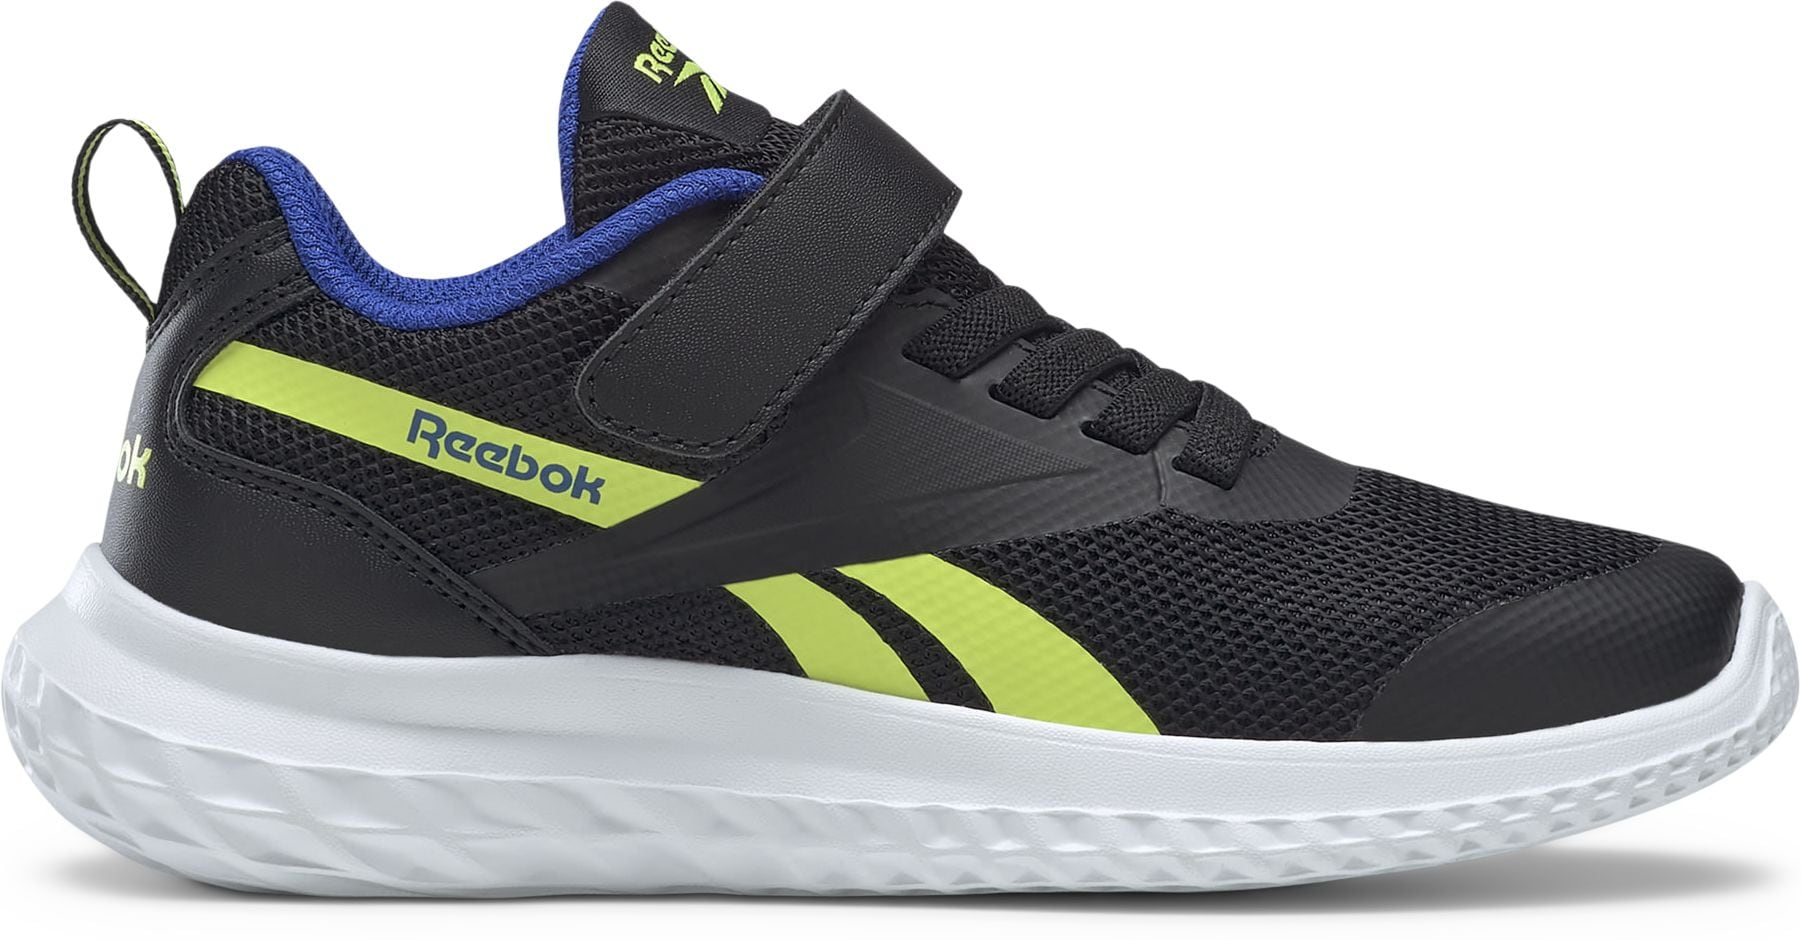 356051102104, Rush Runner Alt Shoes, REEBOK, Detail